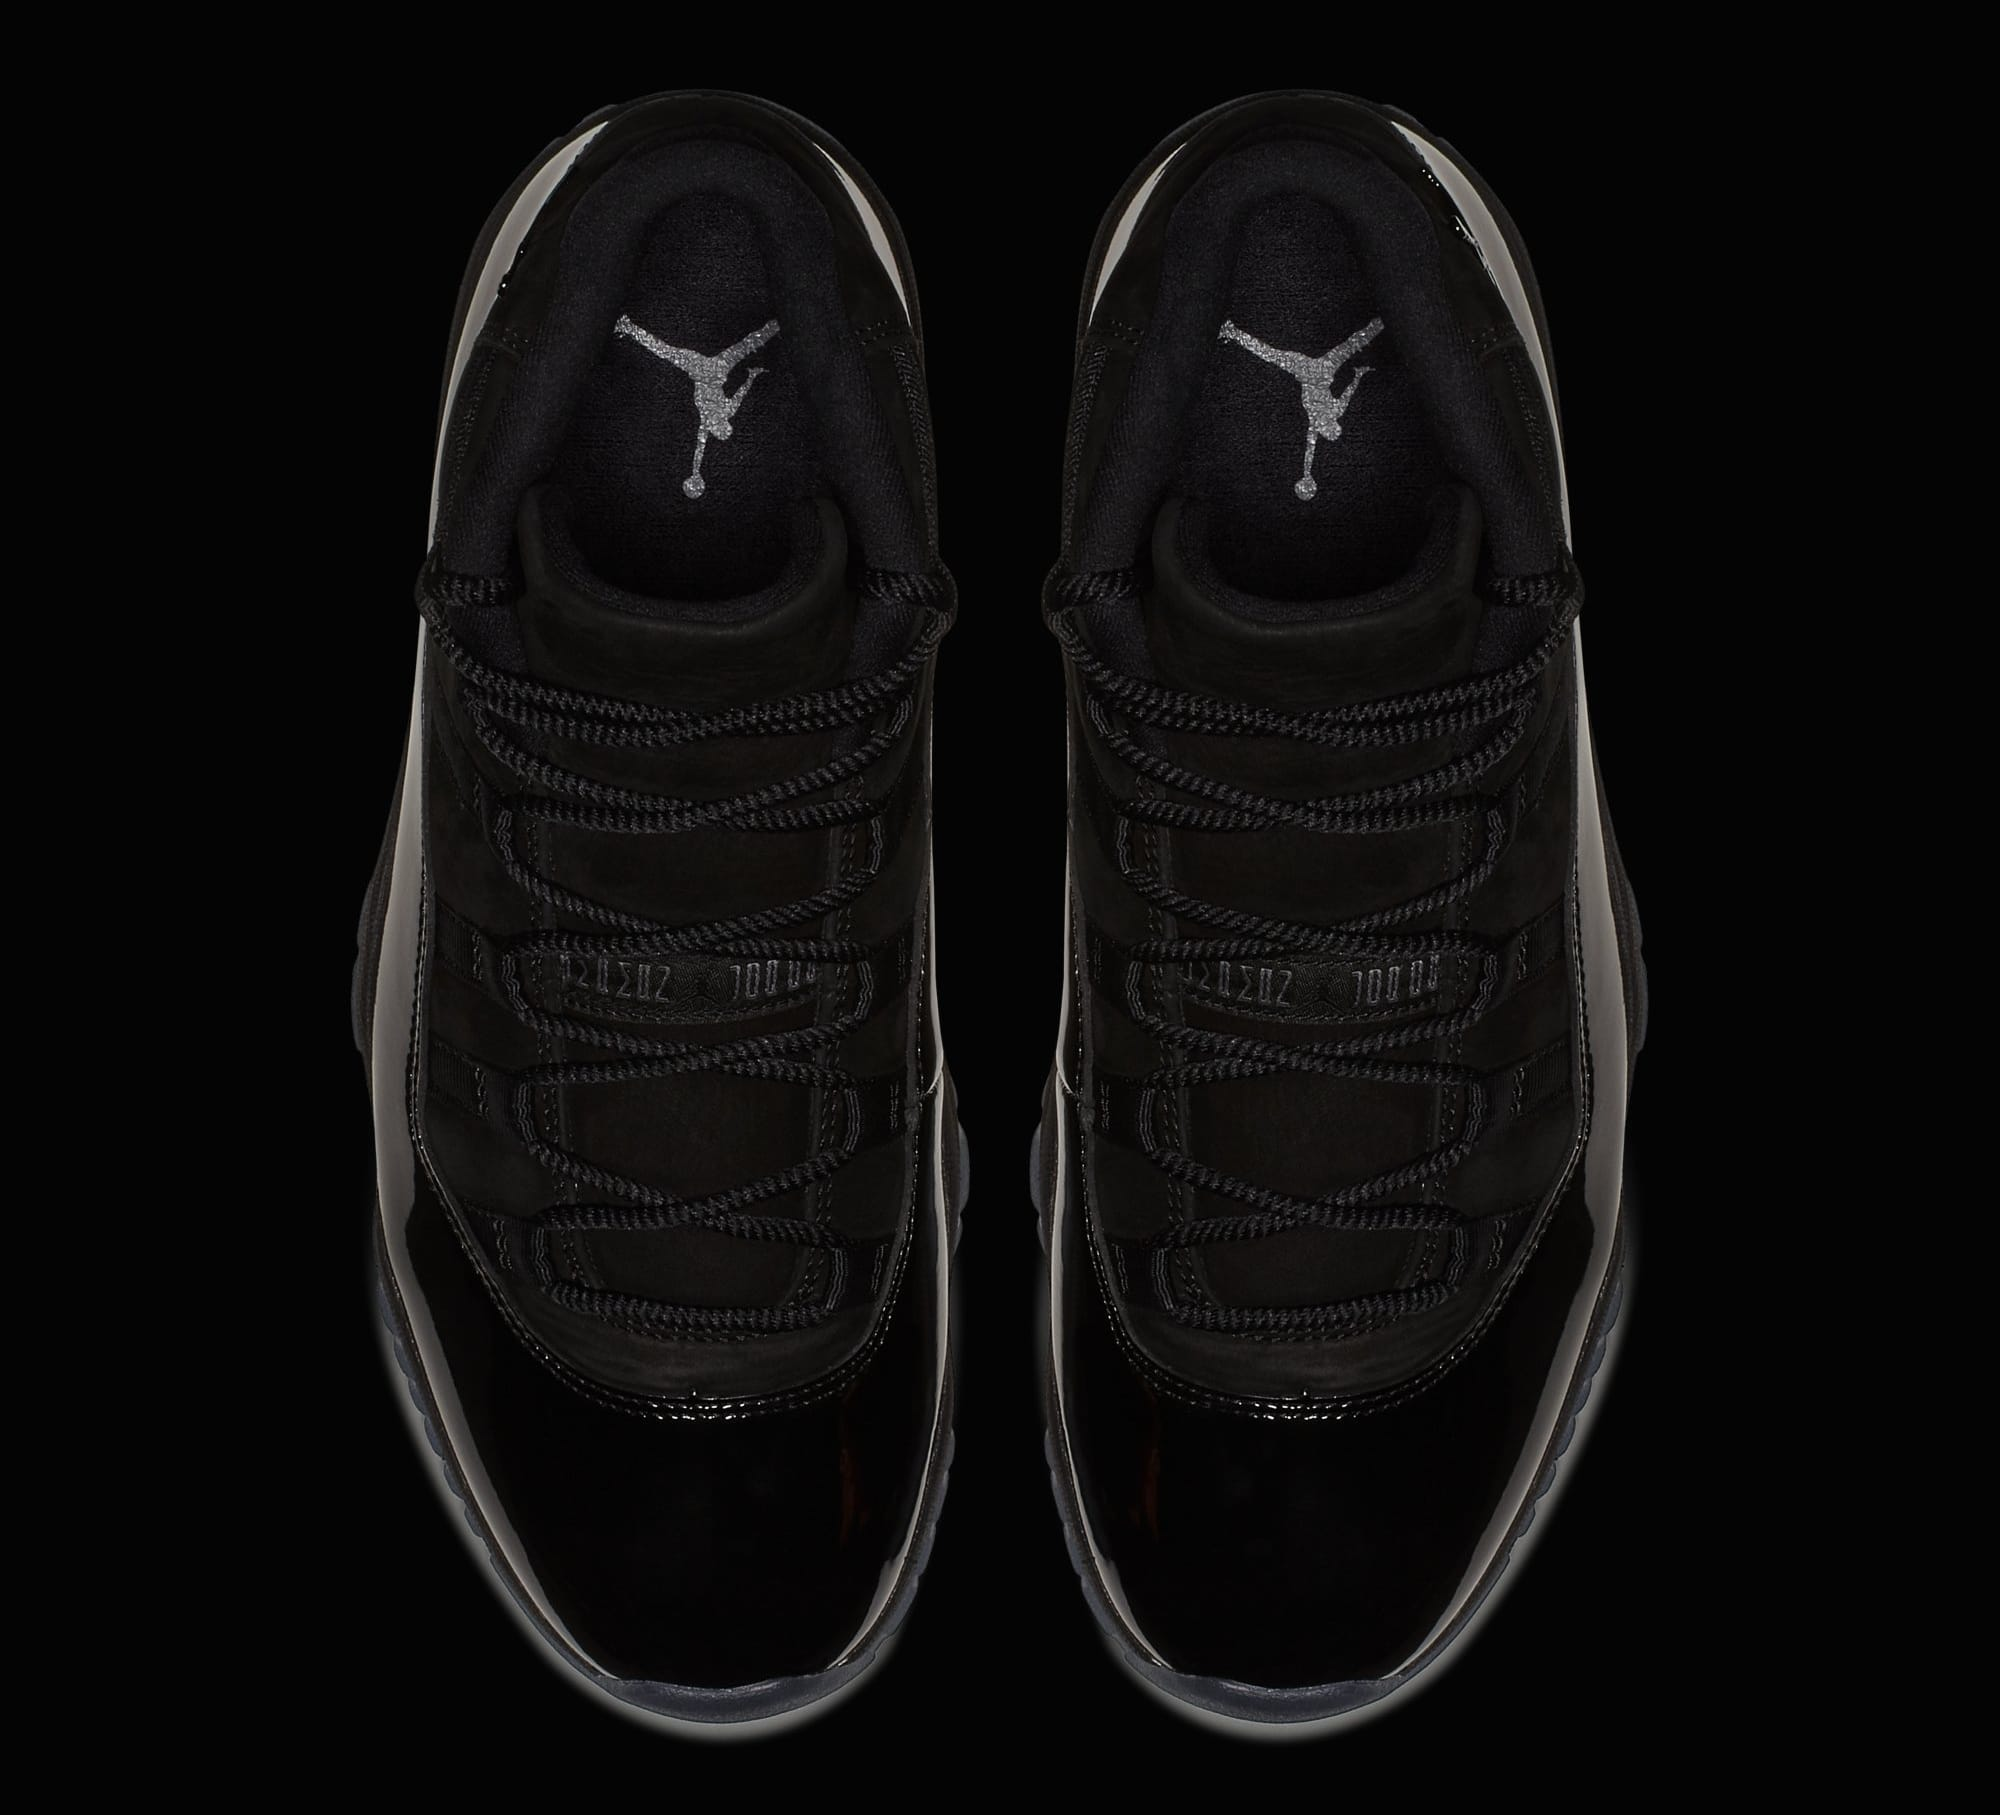 Air Jordan 11 Retro \'Cap and Gown\' SNKRS Early Access | Sole Collector